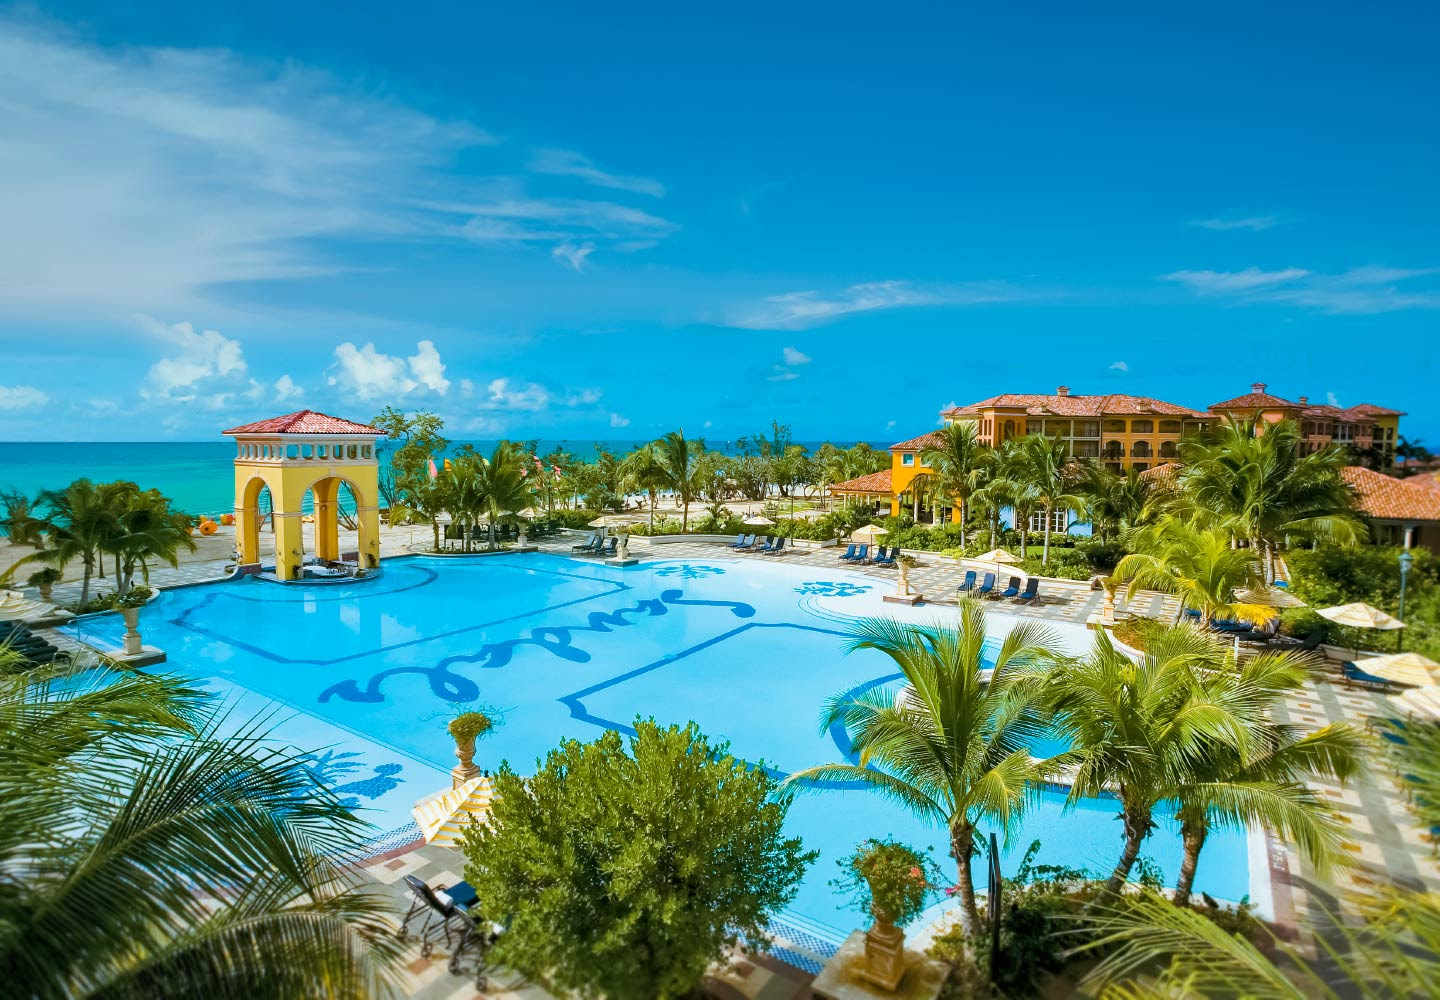 Enter The 2015 Sandals Love Nest Sweepstakes Today